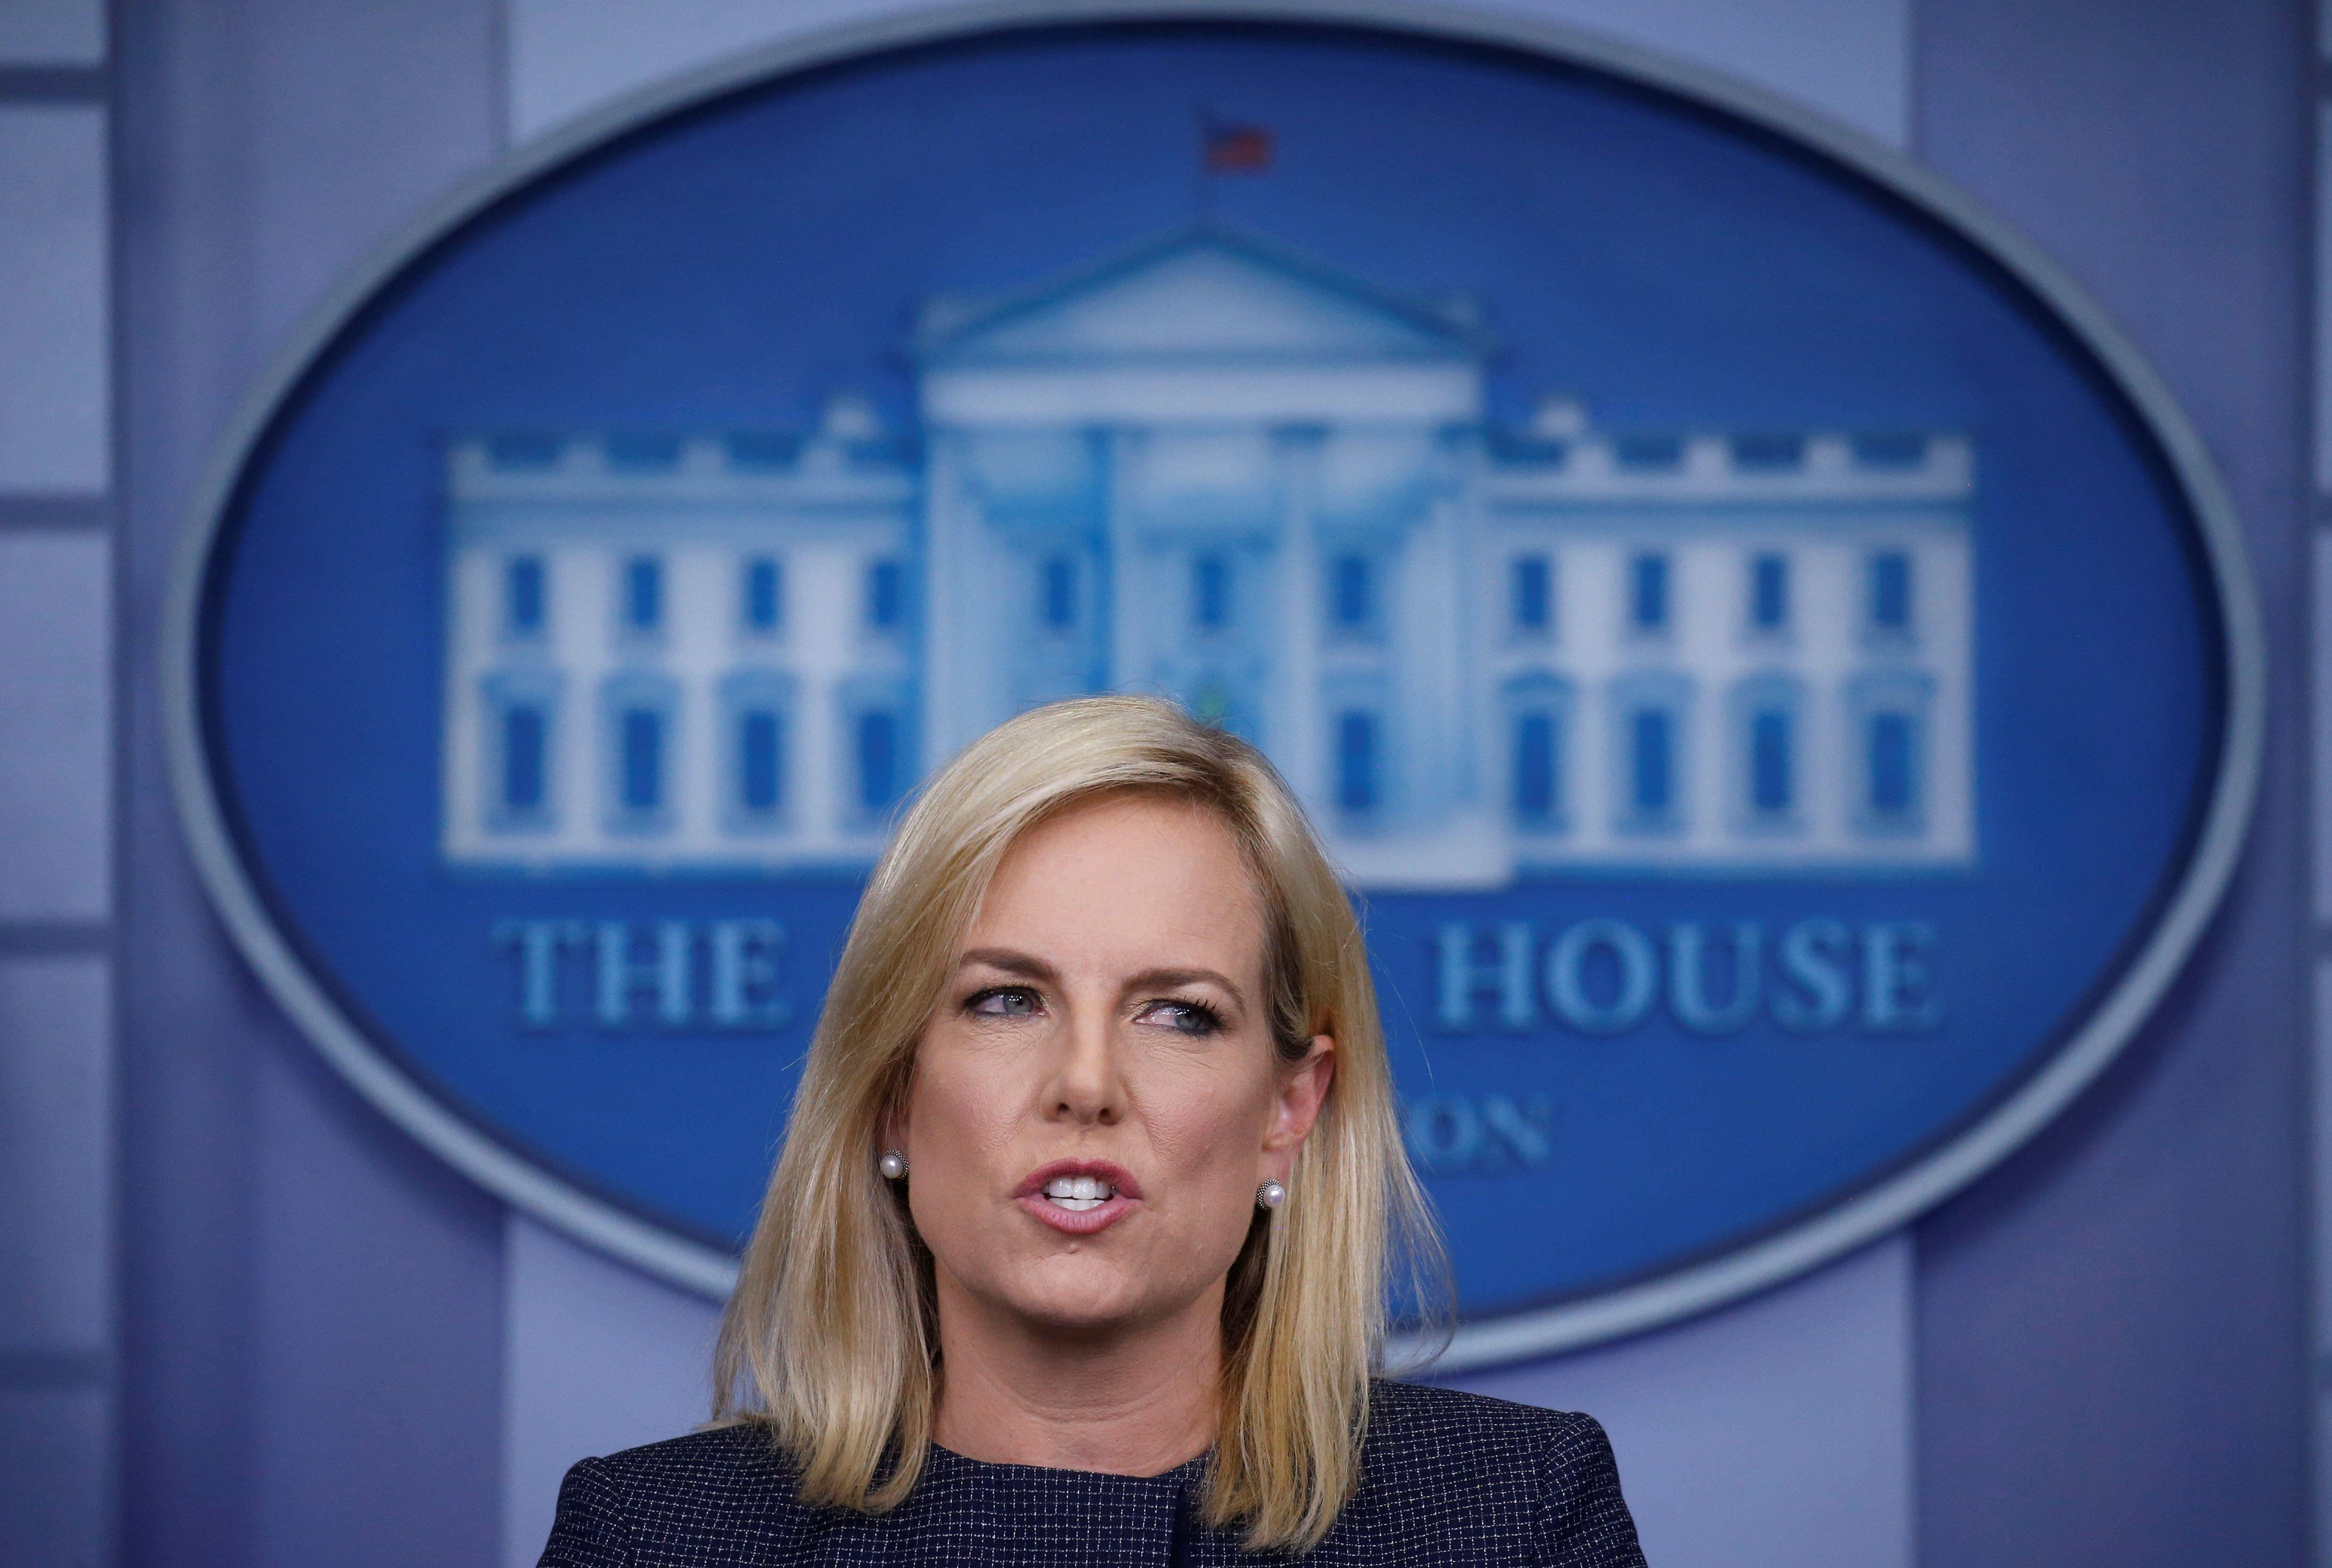 Nielsen: Russian Interference In Election Infrastructure Meant To 'Cause  Chaos' For Both Parties